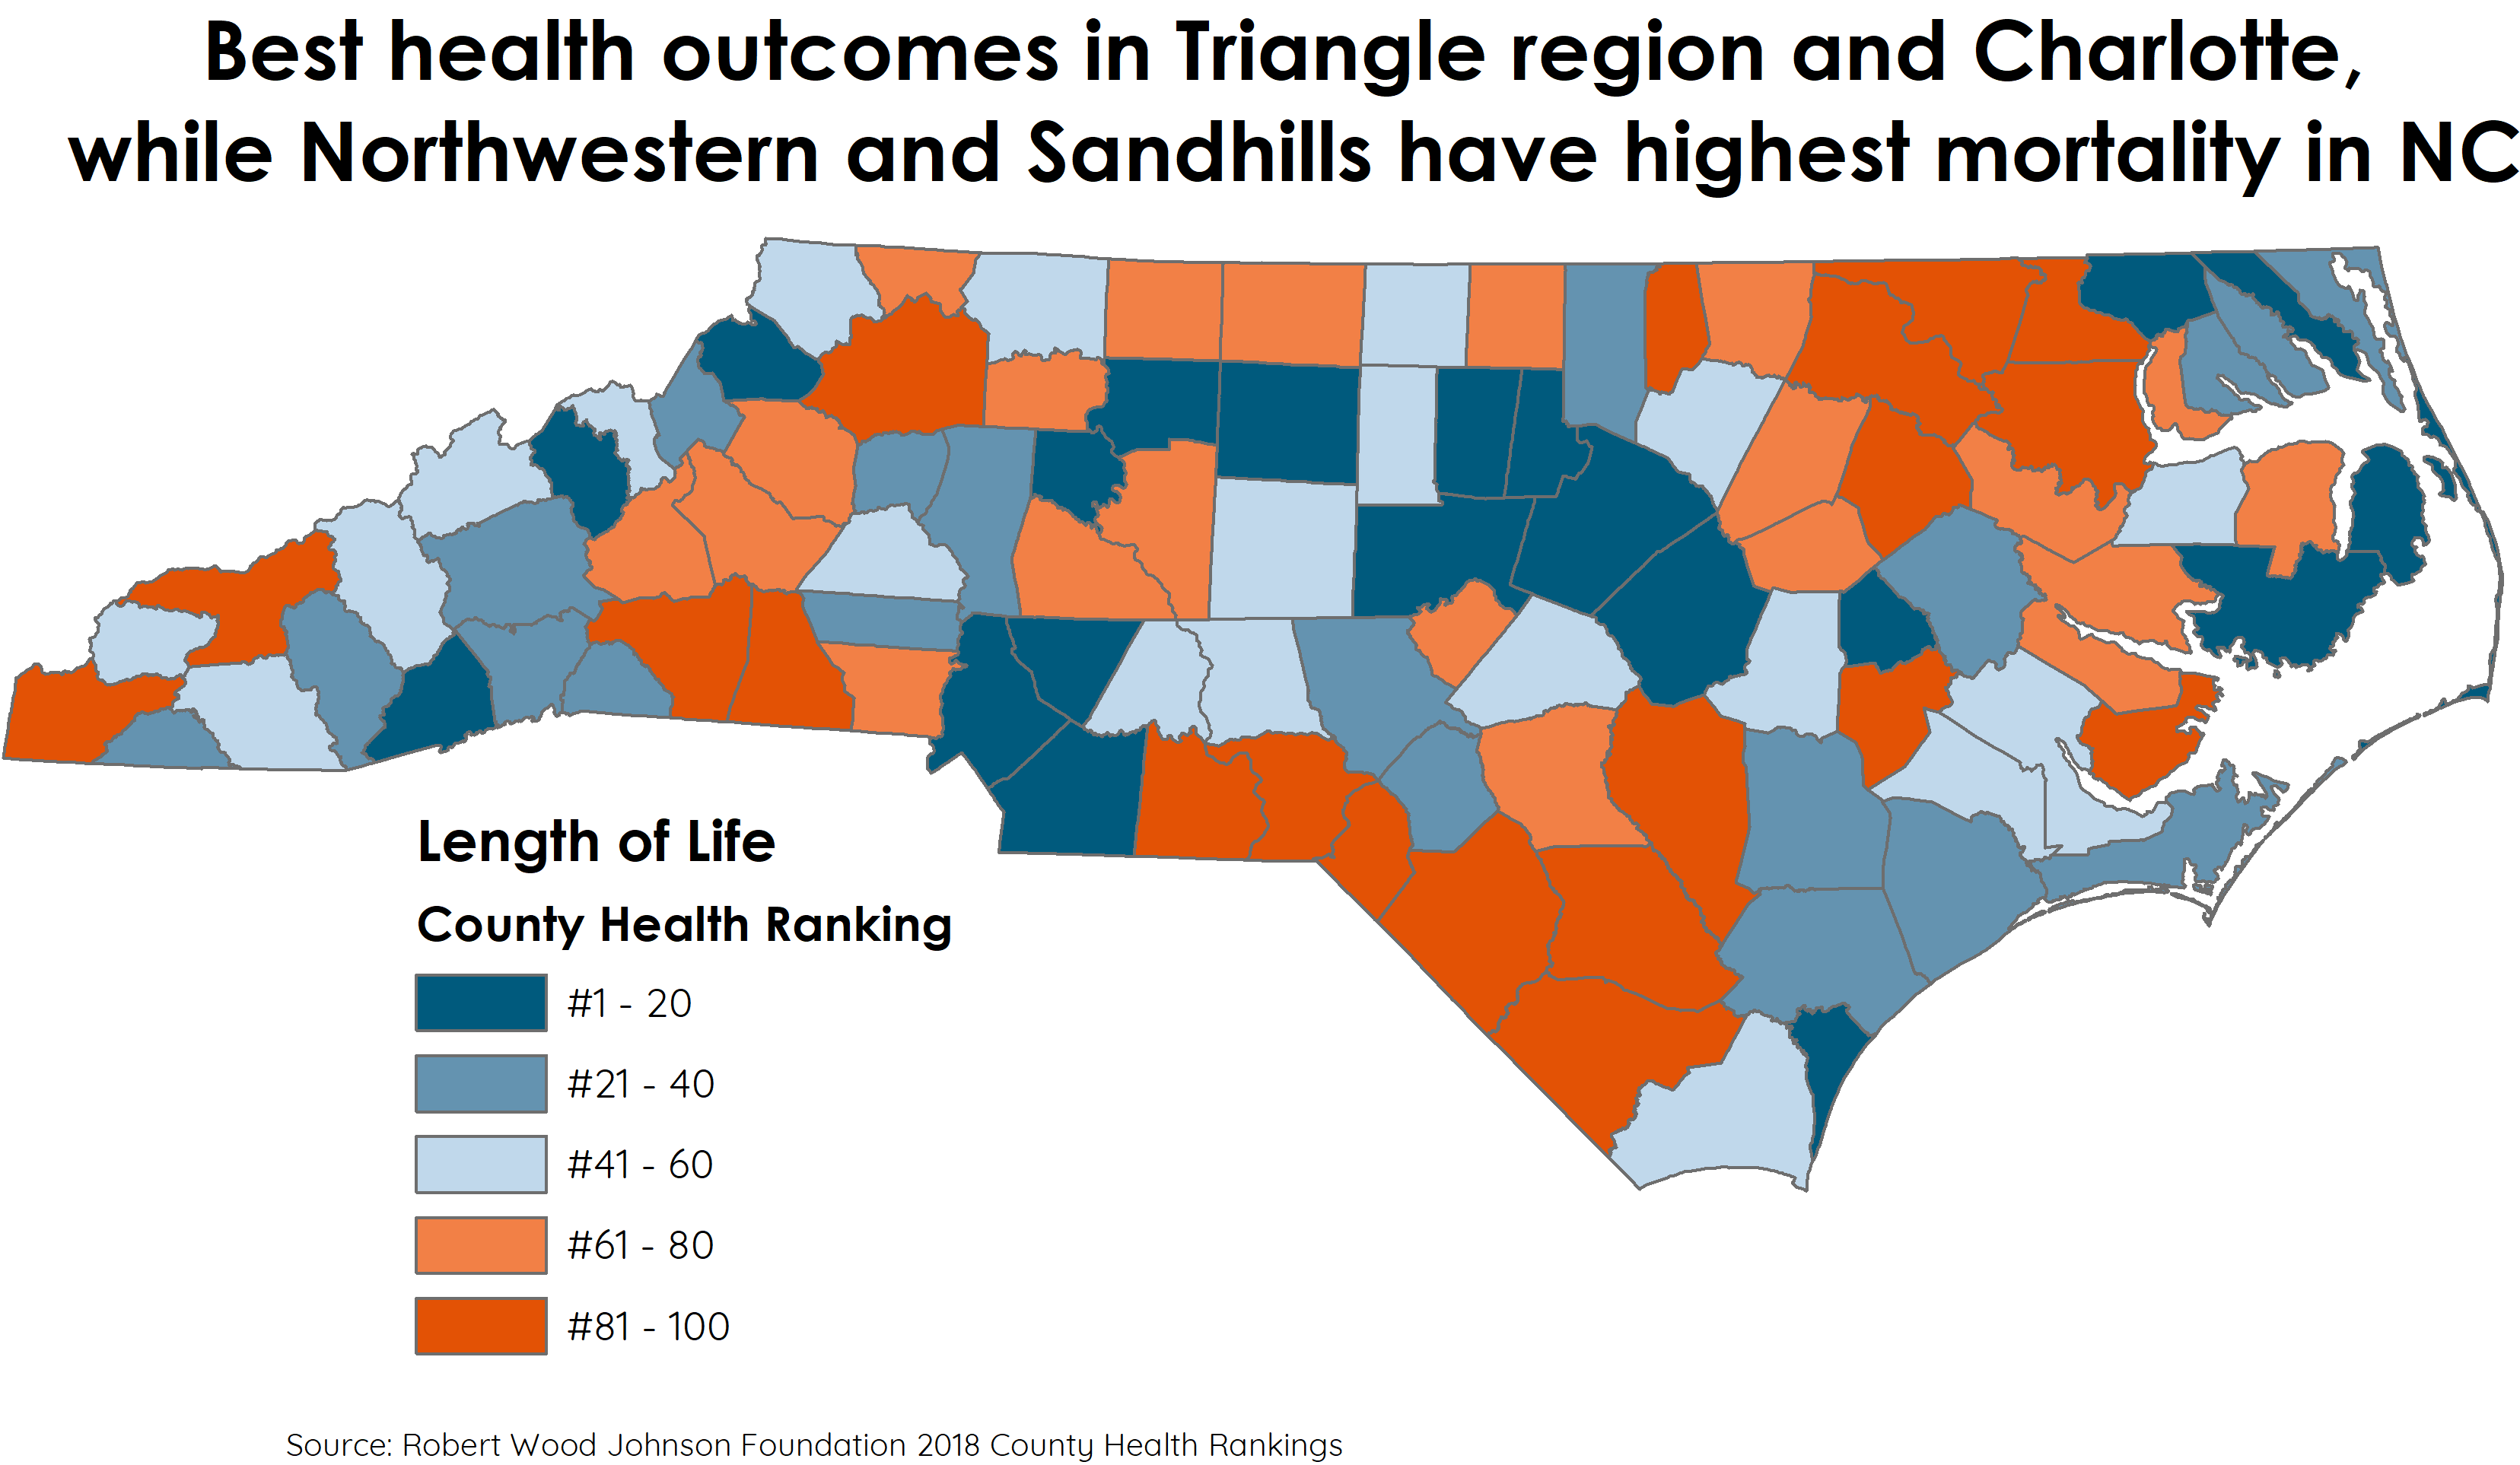 Across the state counties in the northeast sandhills and some western portions of the state were among those with the worst length of life outcomes